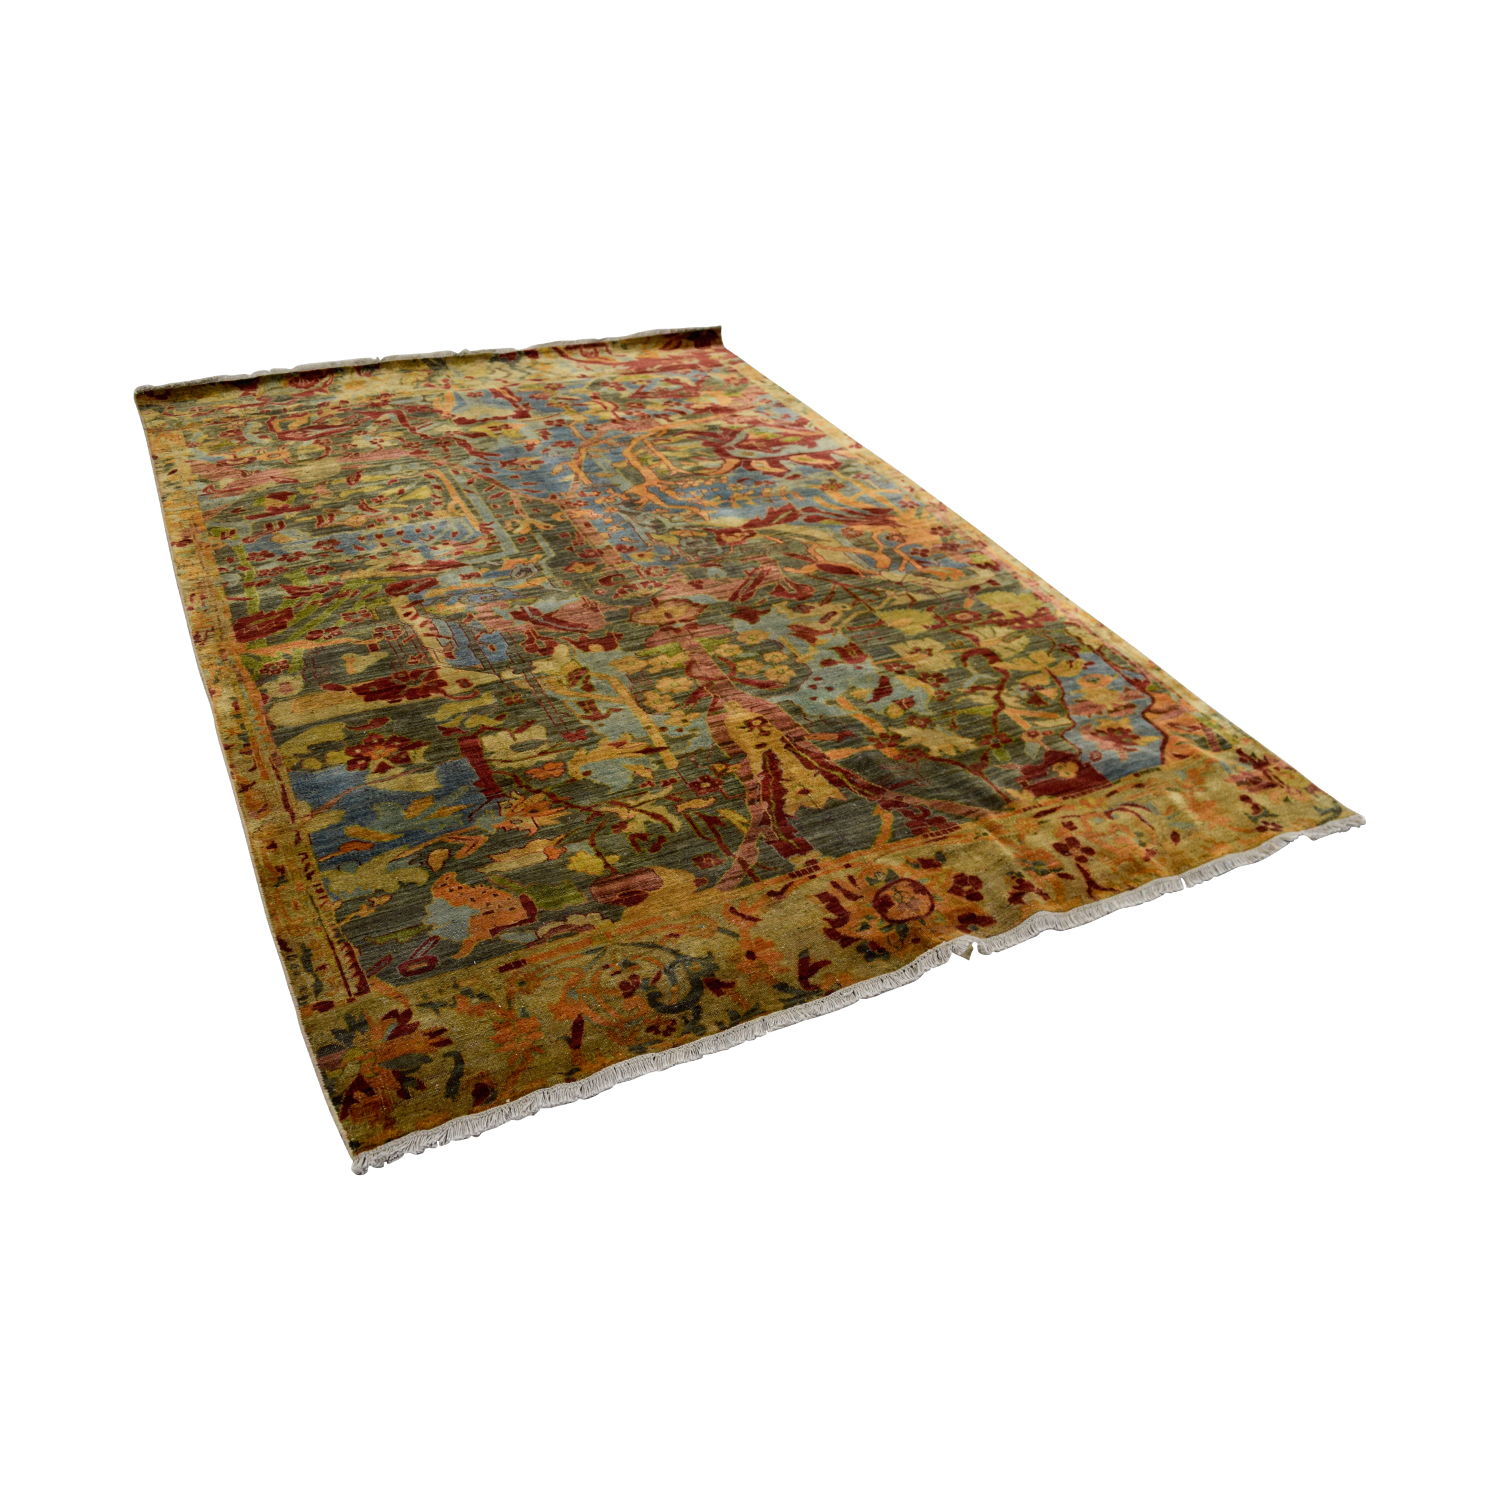 Obeetee Obeetee Hand Knotted Red and Green Floral Wool Rug used